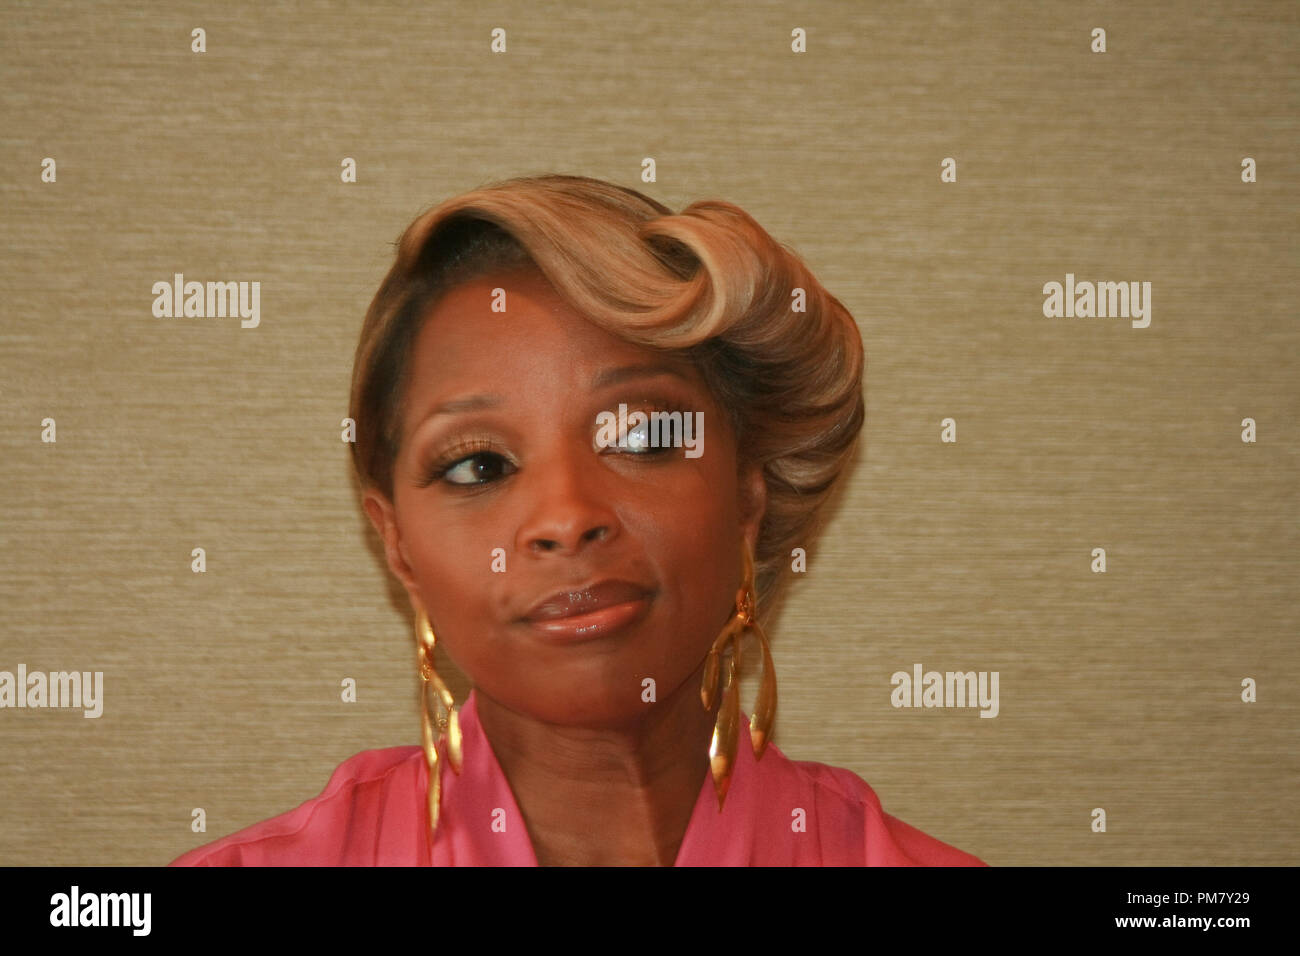 Mary J. Blige 'Rock of Ages'  Portrait Session, June 8, 2012.  Reproduction by American tabloids is absolutely forbidden. File Reference # 31545_065JRC  For Editorial Use Only -  All Rights Reserved - Stock Image